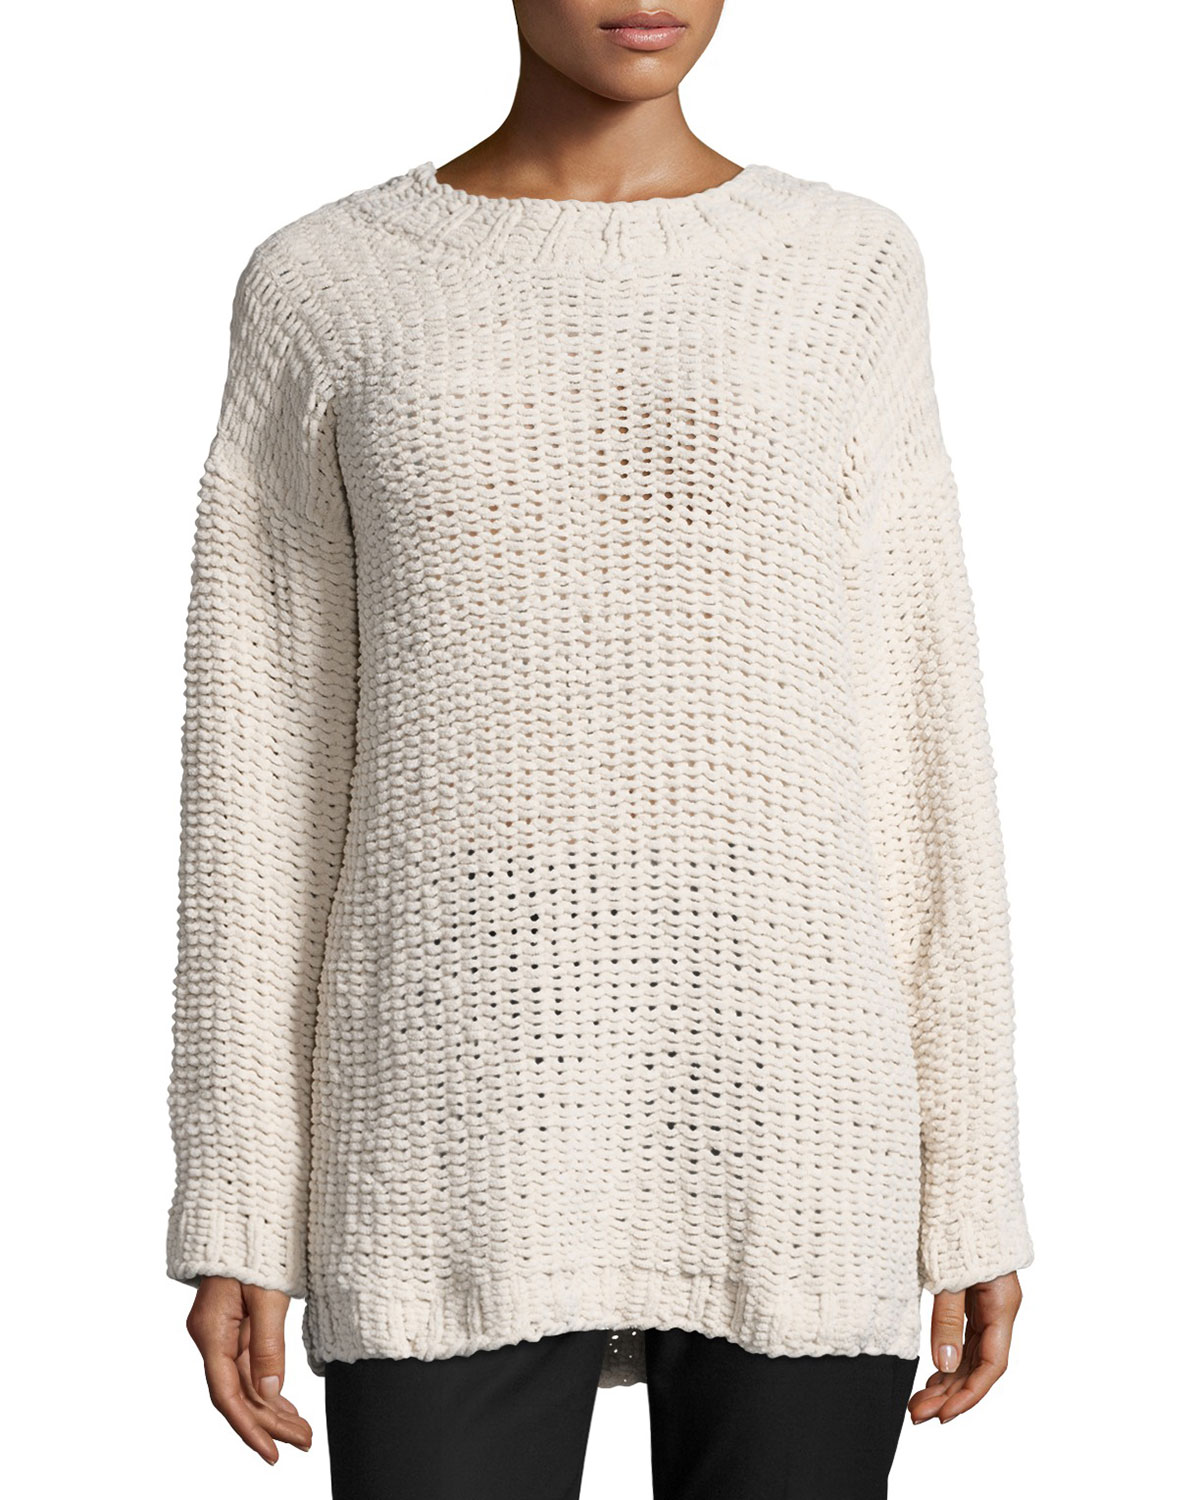 Amped Up Oversized Sweater, Beige